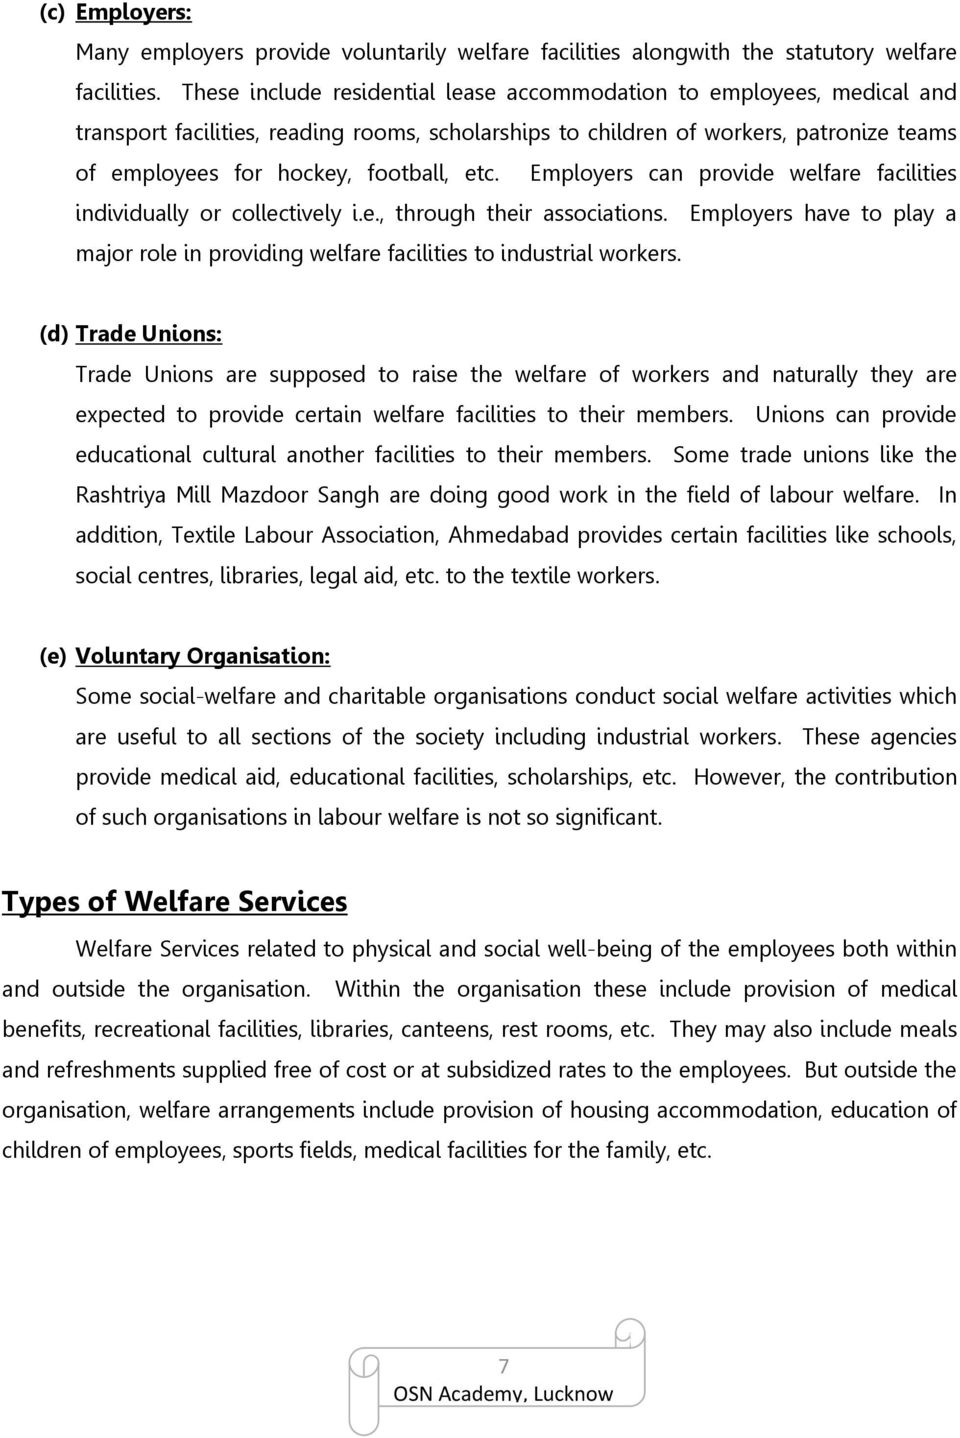 CHAPTER 9 LABOUR WELFARE: MEANING, DEFINITION, SCOPE - PDF